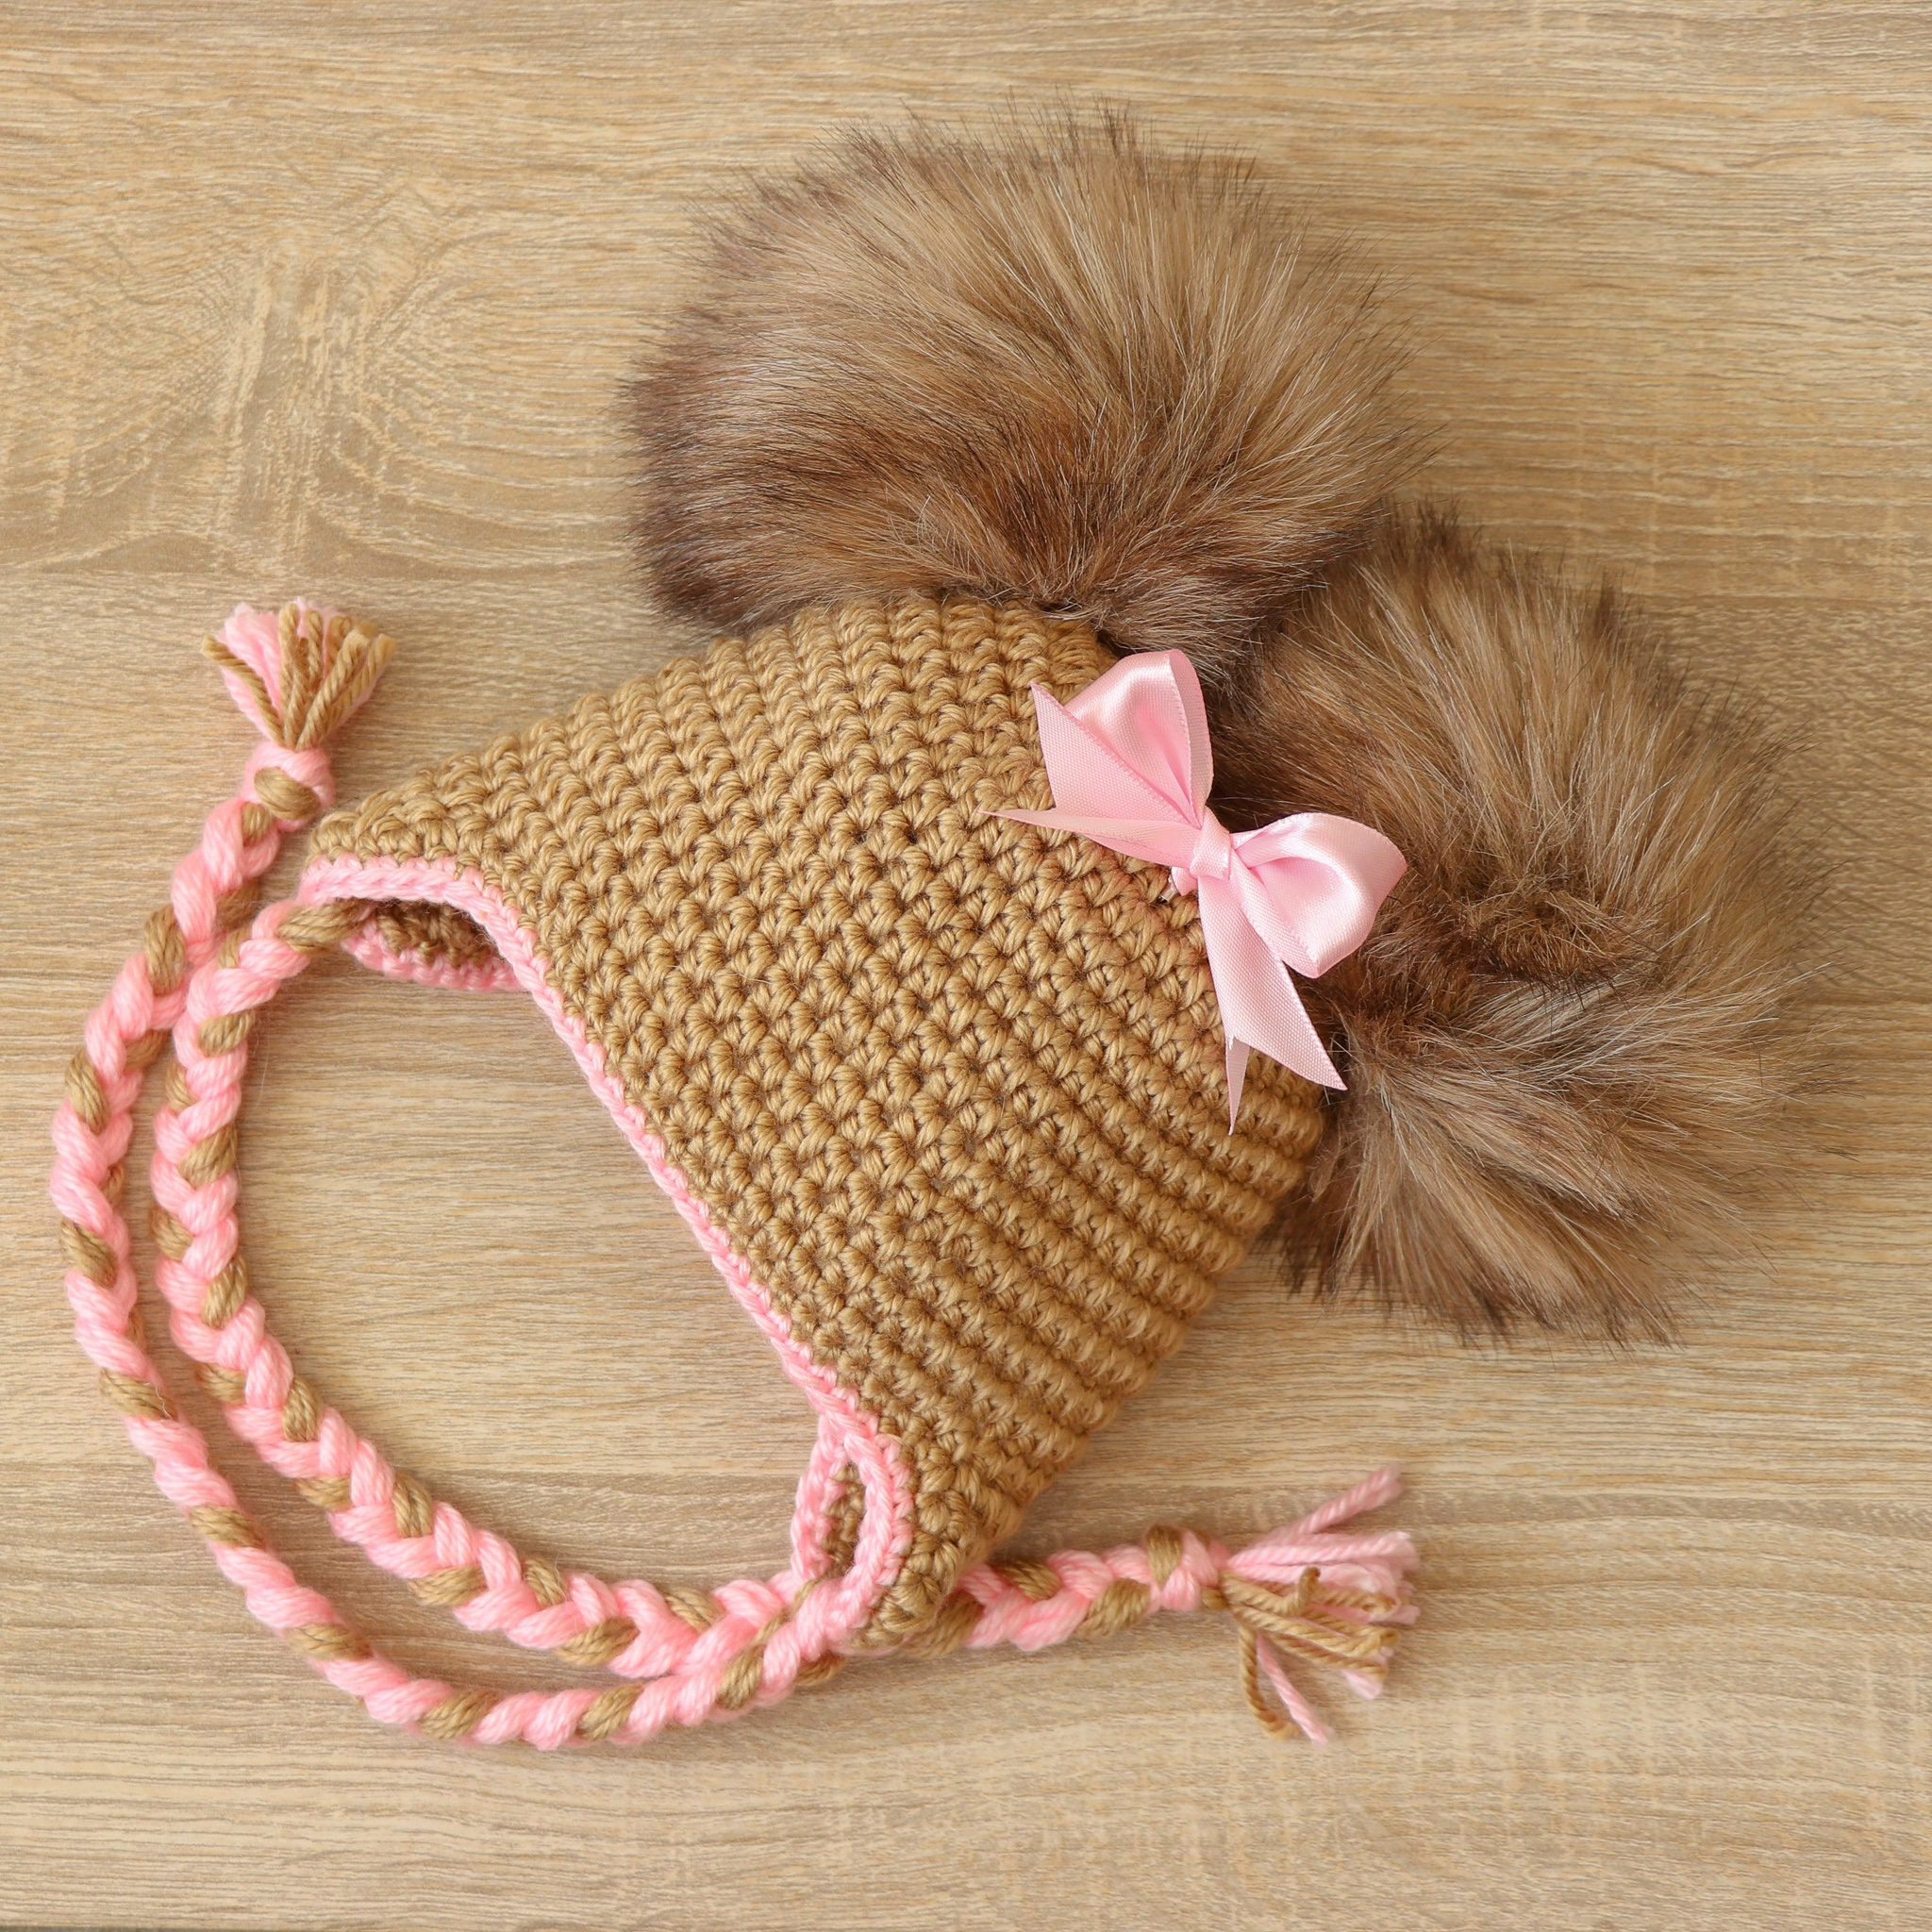 fb56f82b5c8 Double pom hat with bow - Newborn girl hat - Baby girl hat - Earflap ...